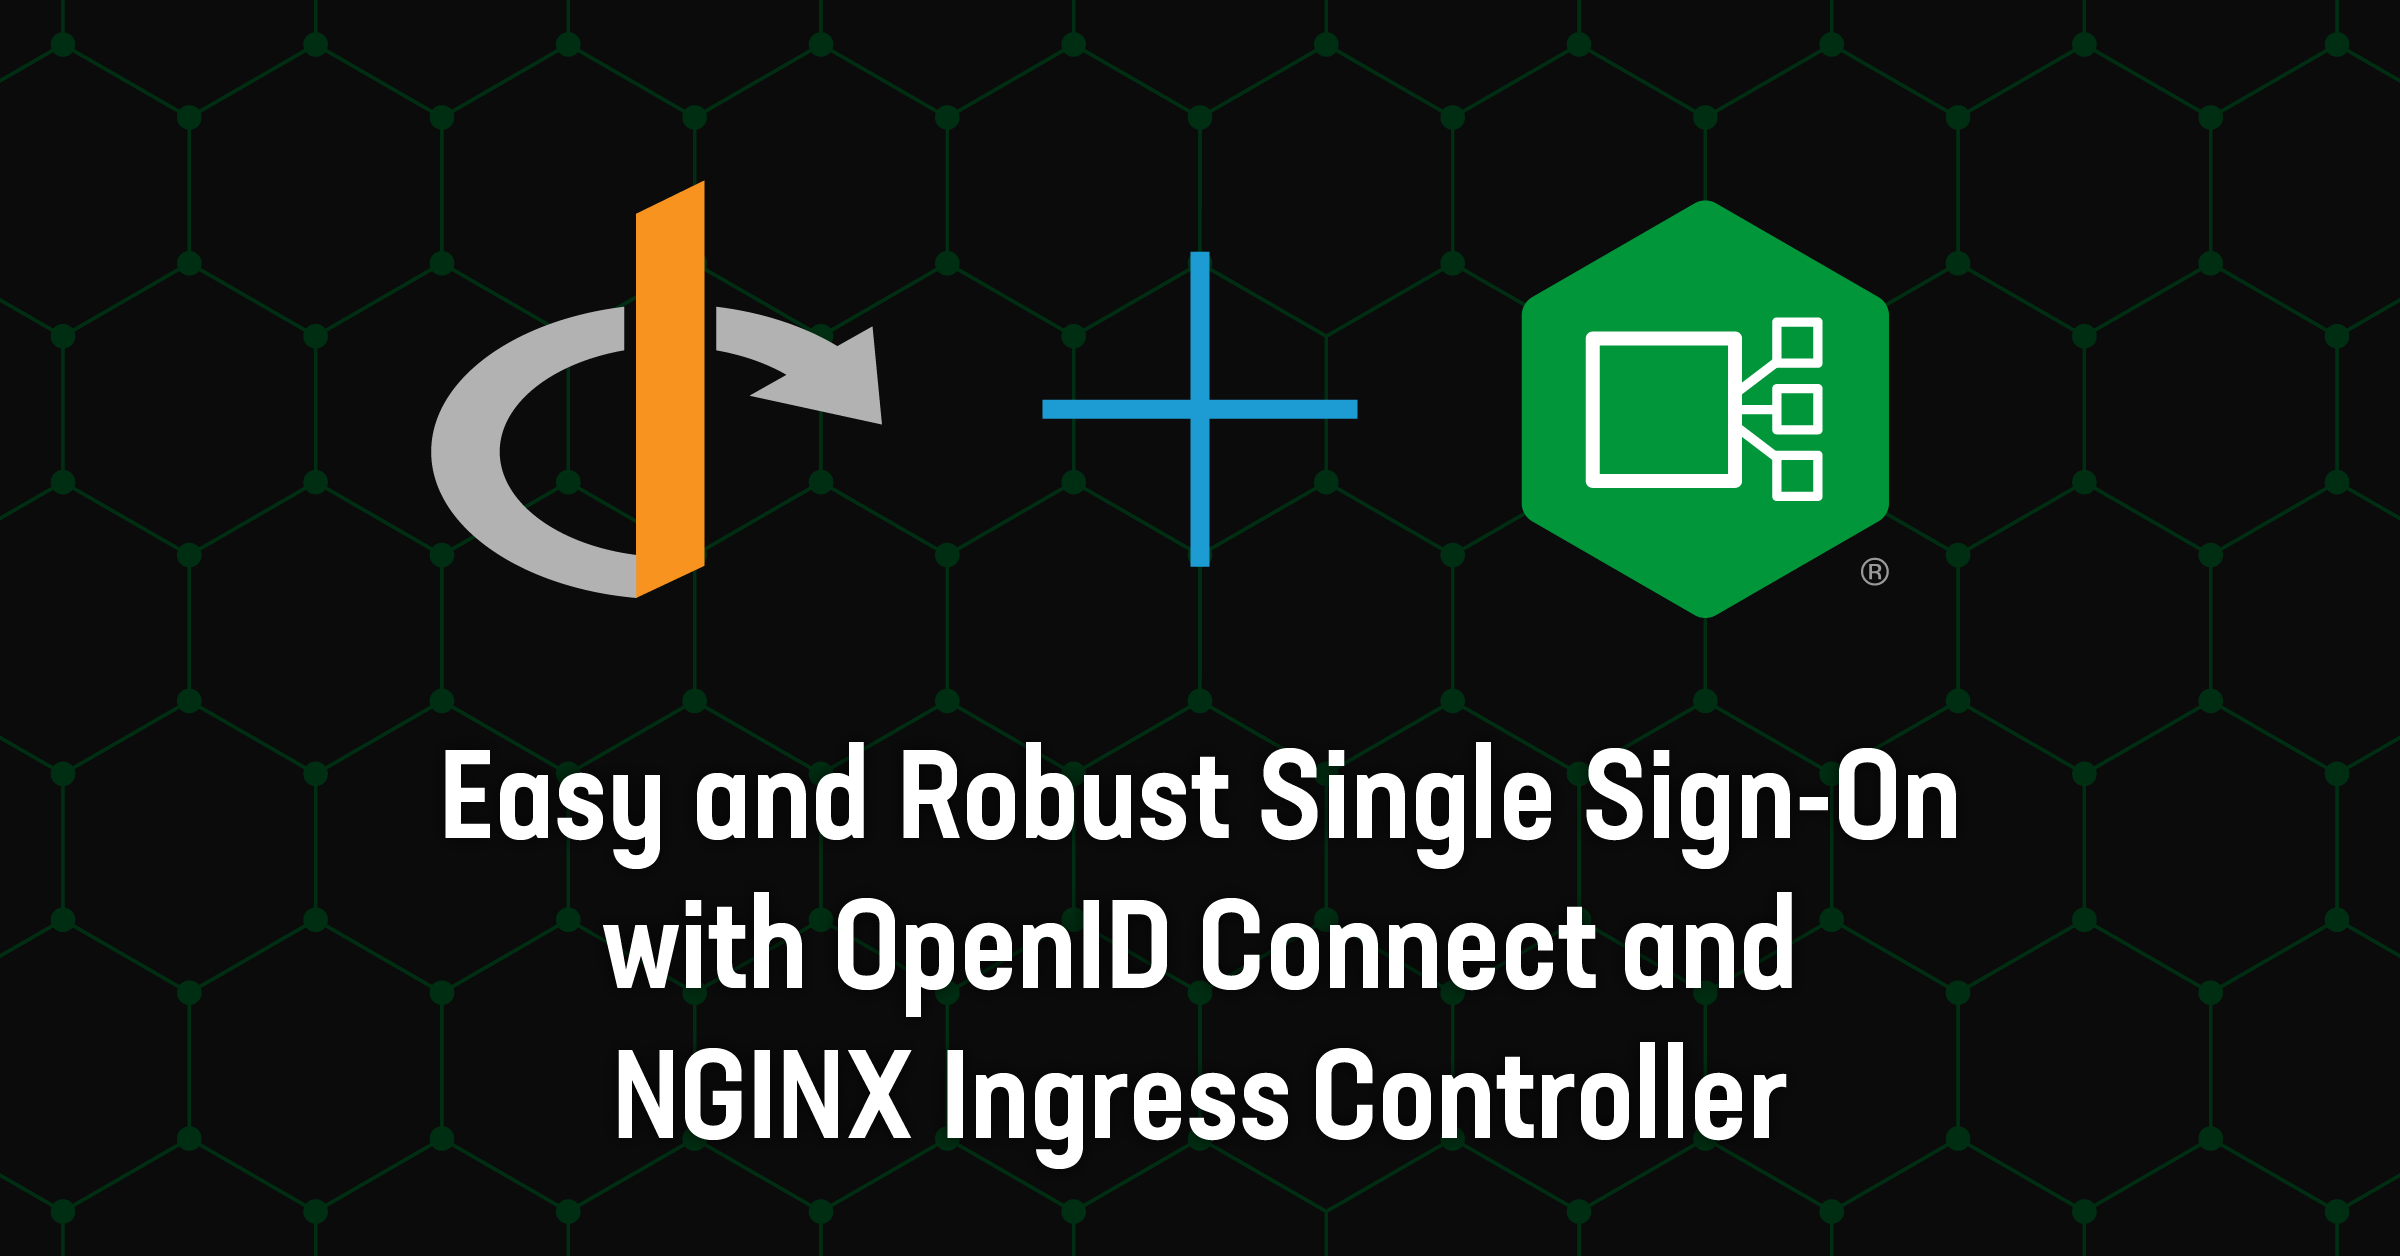 Easy and Robust Single Sign-on with OpenID Connect and NGINX ingress Controller